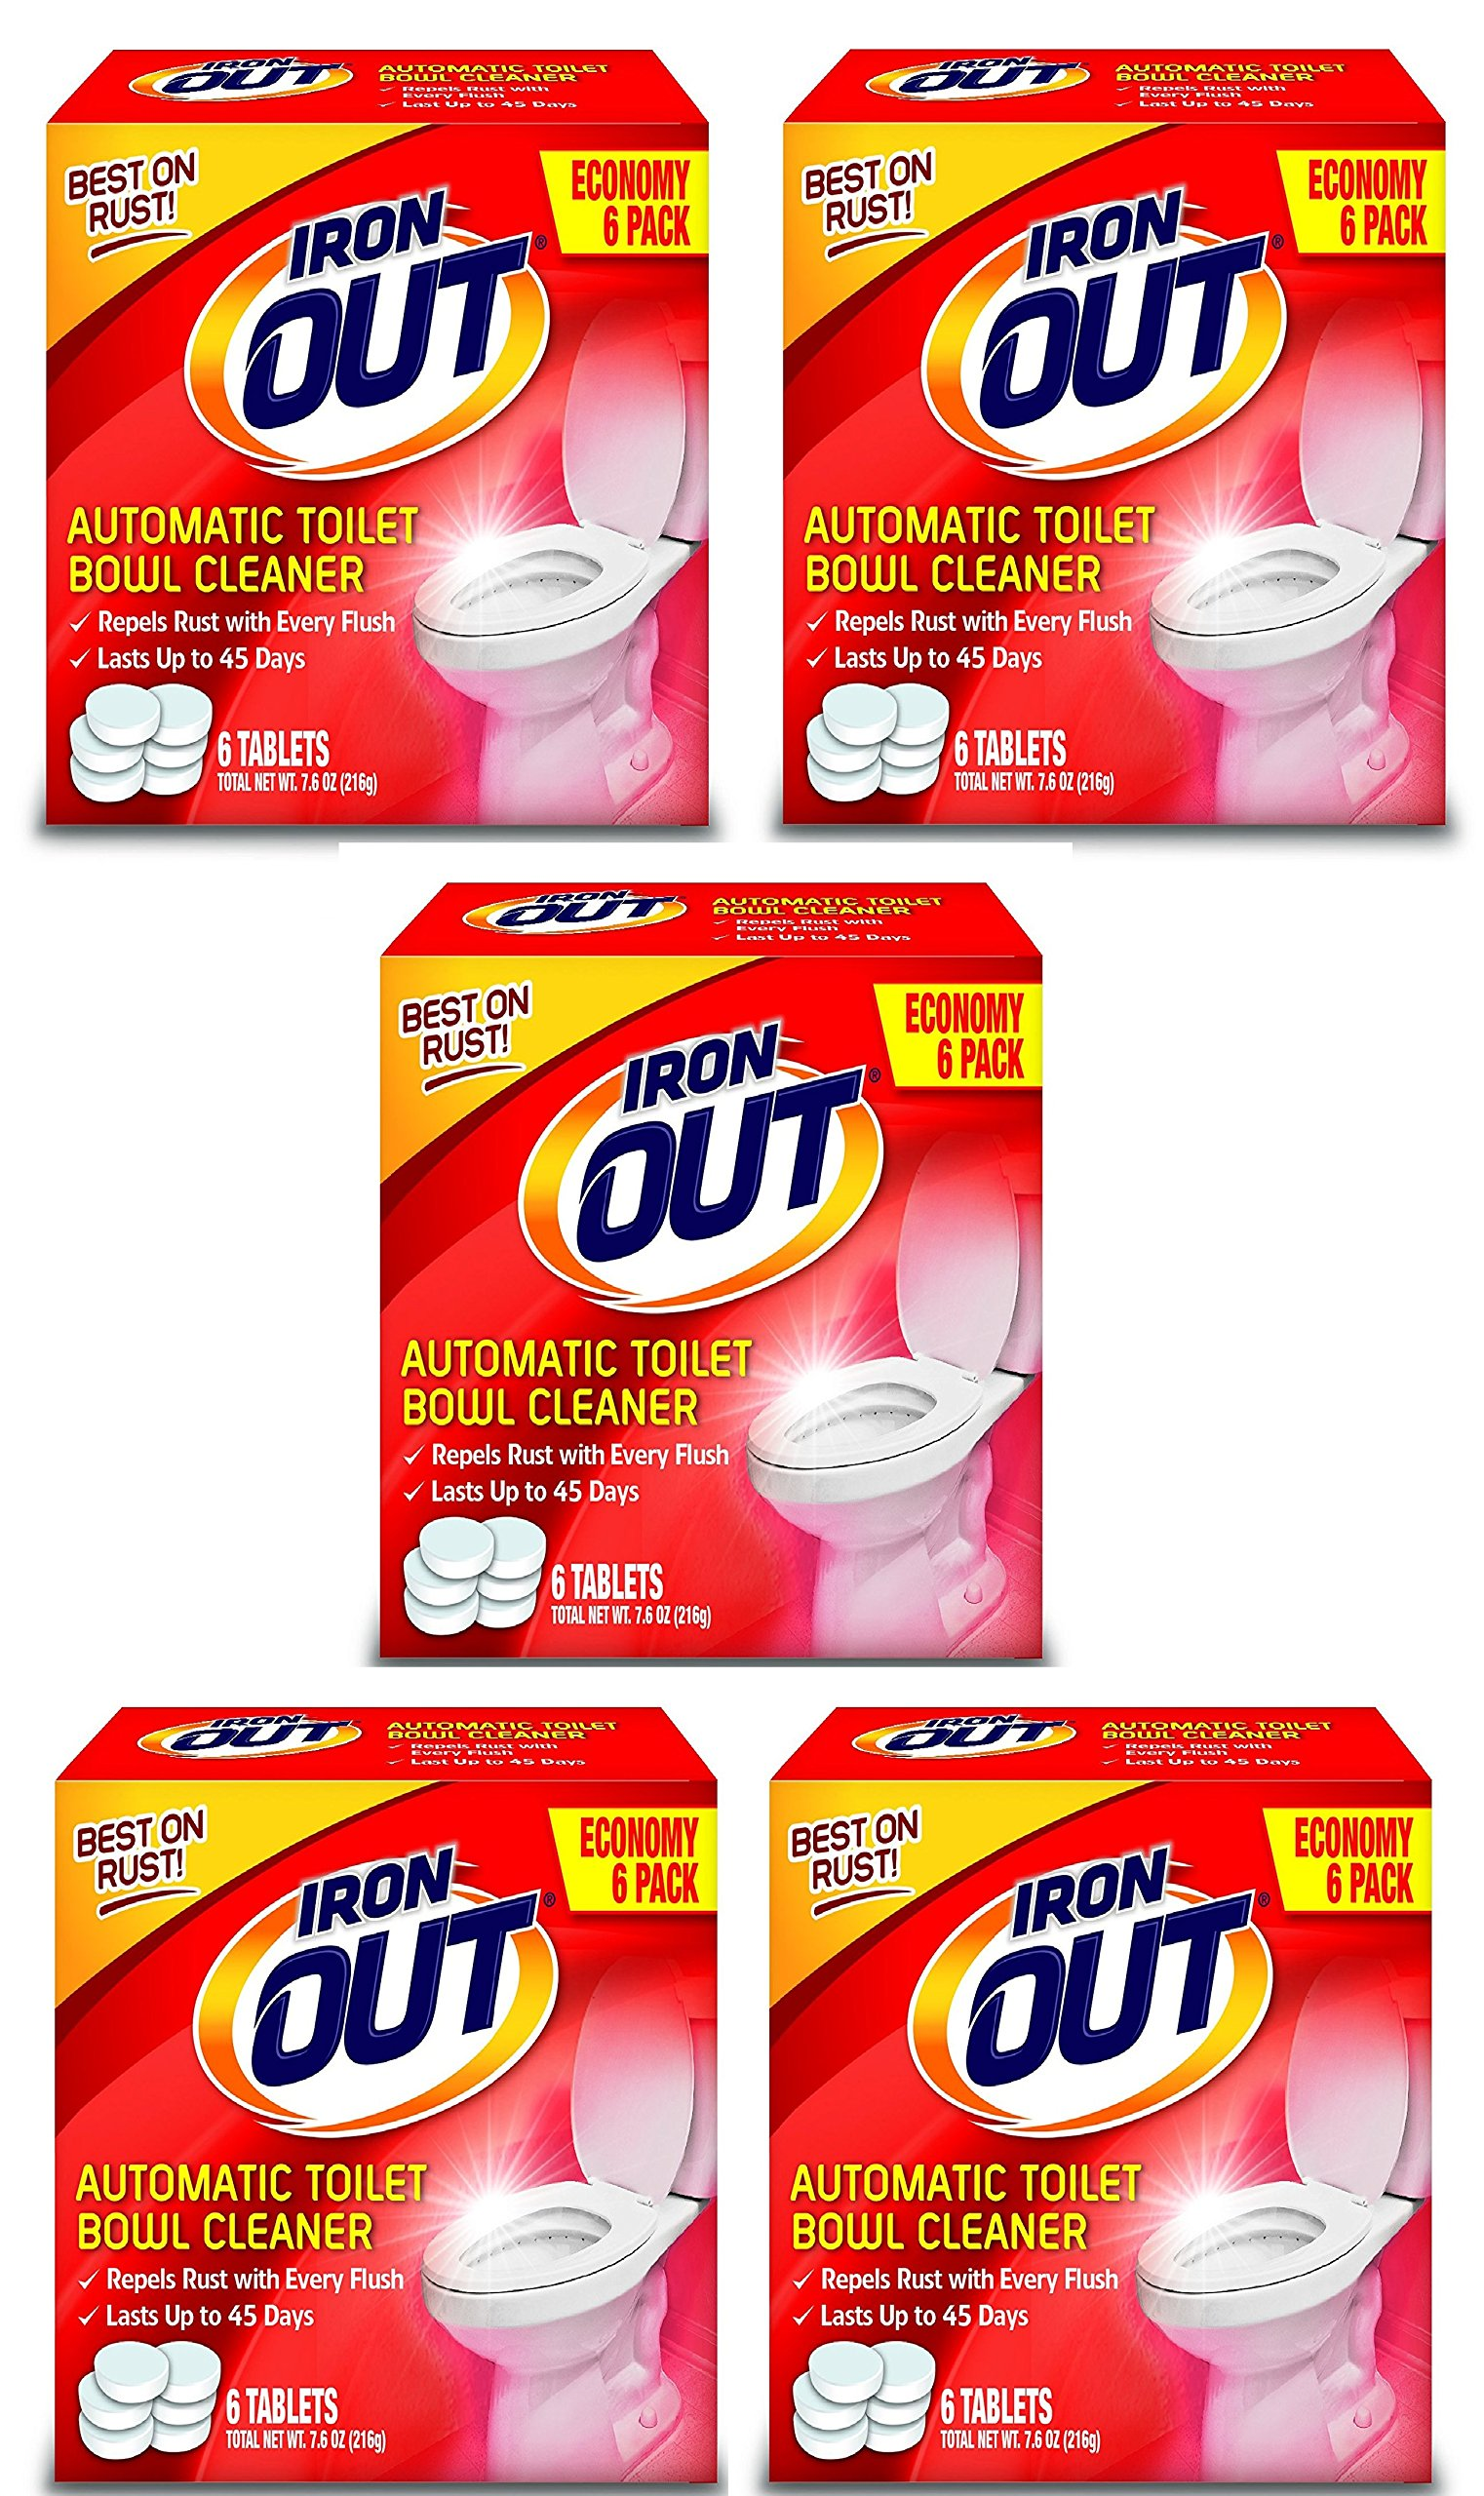 Iron OUT Automatic Toilet Bowl Cleaner (5 pack)